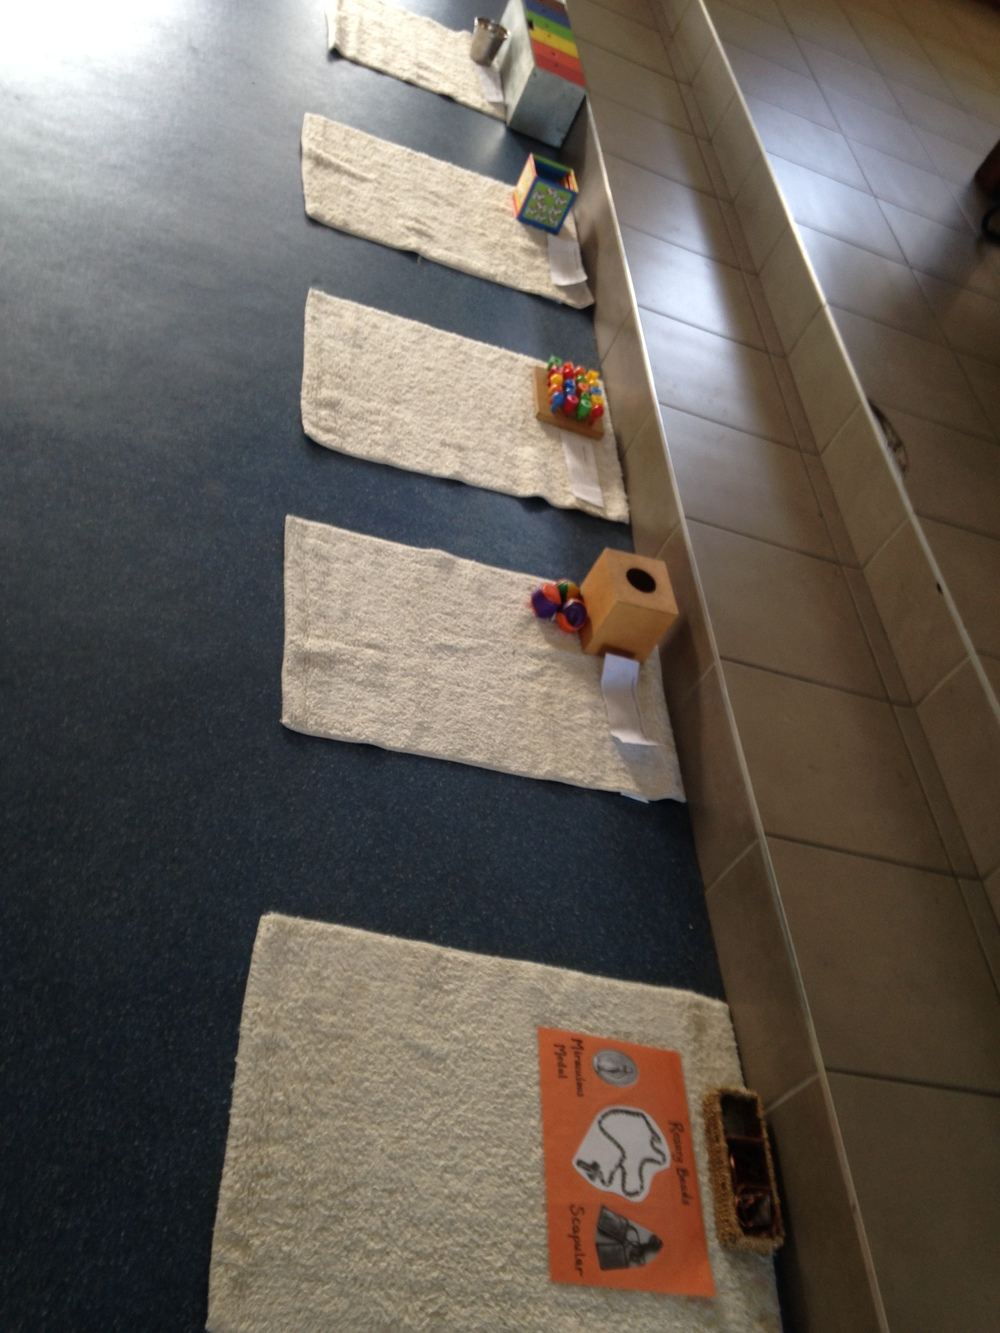 Prepared stations for the children. They requireparent assistance this buildsteam work, communication and mother-child bond.